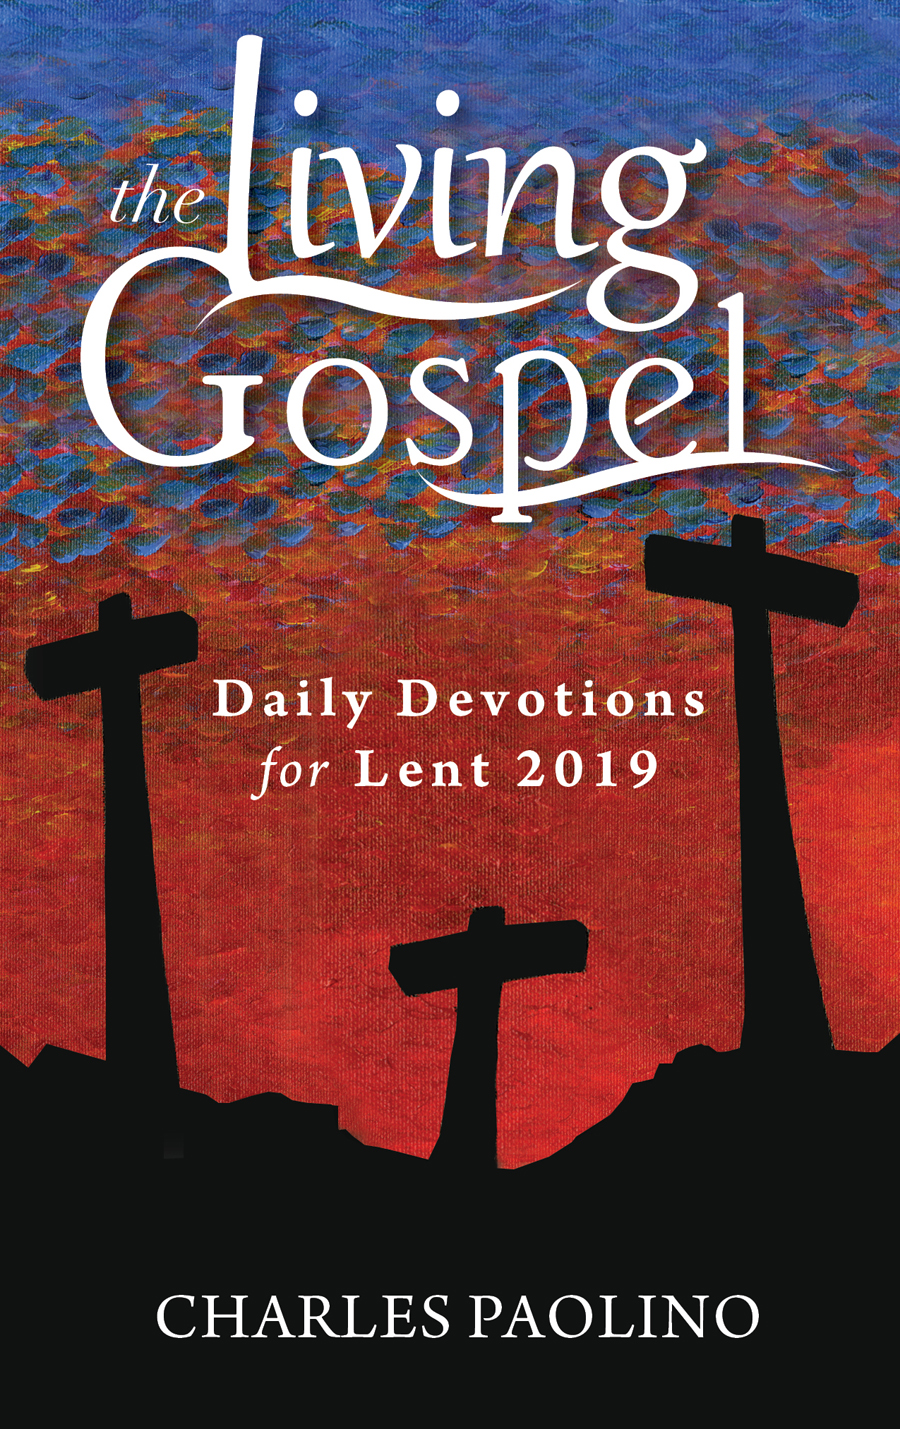 The Living Gospel: Daily Devotions for Lent 2019